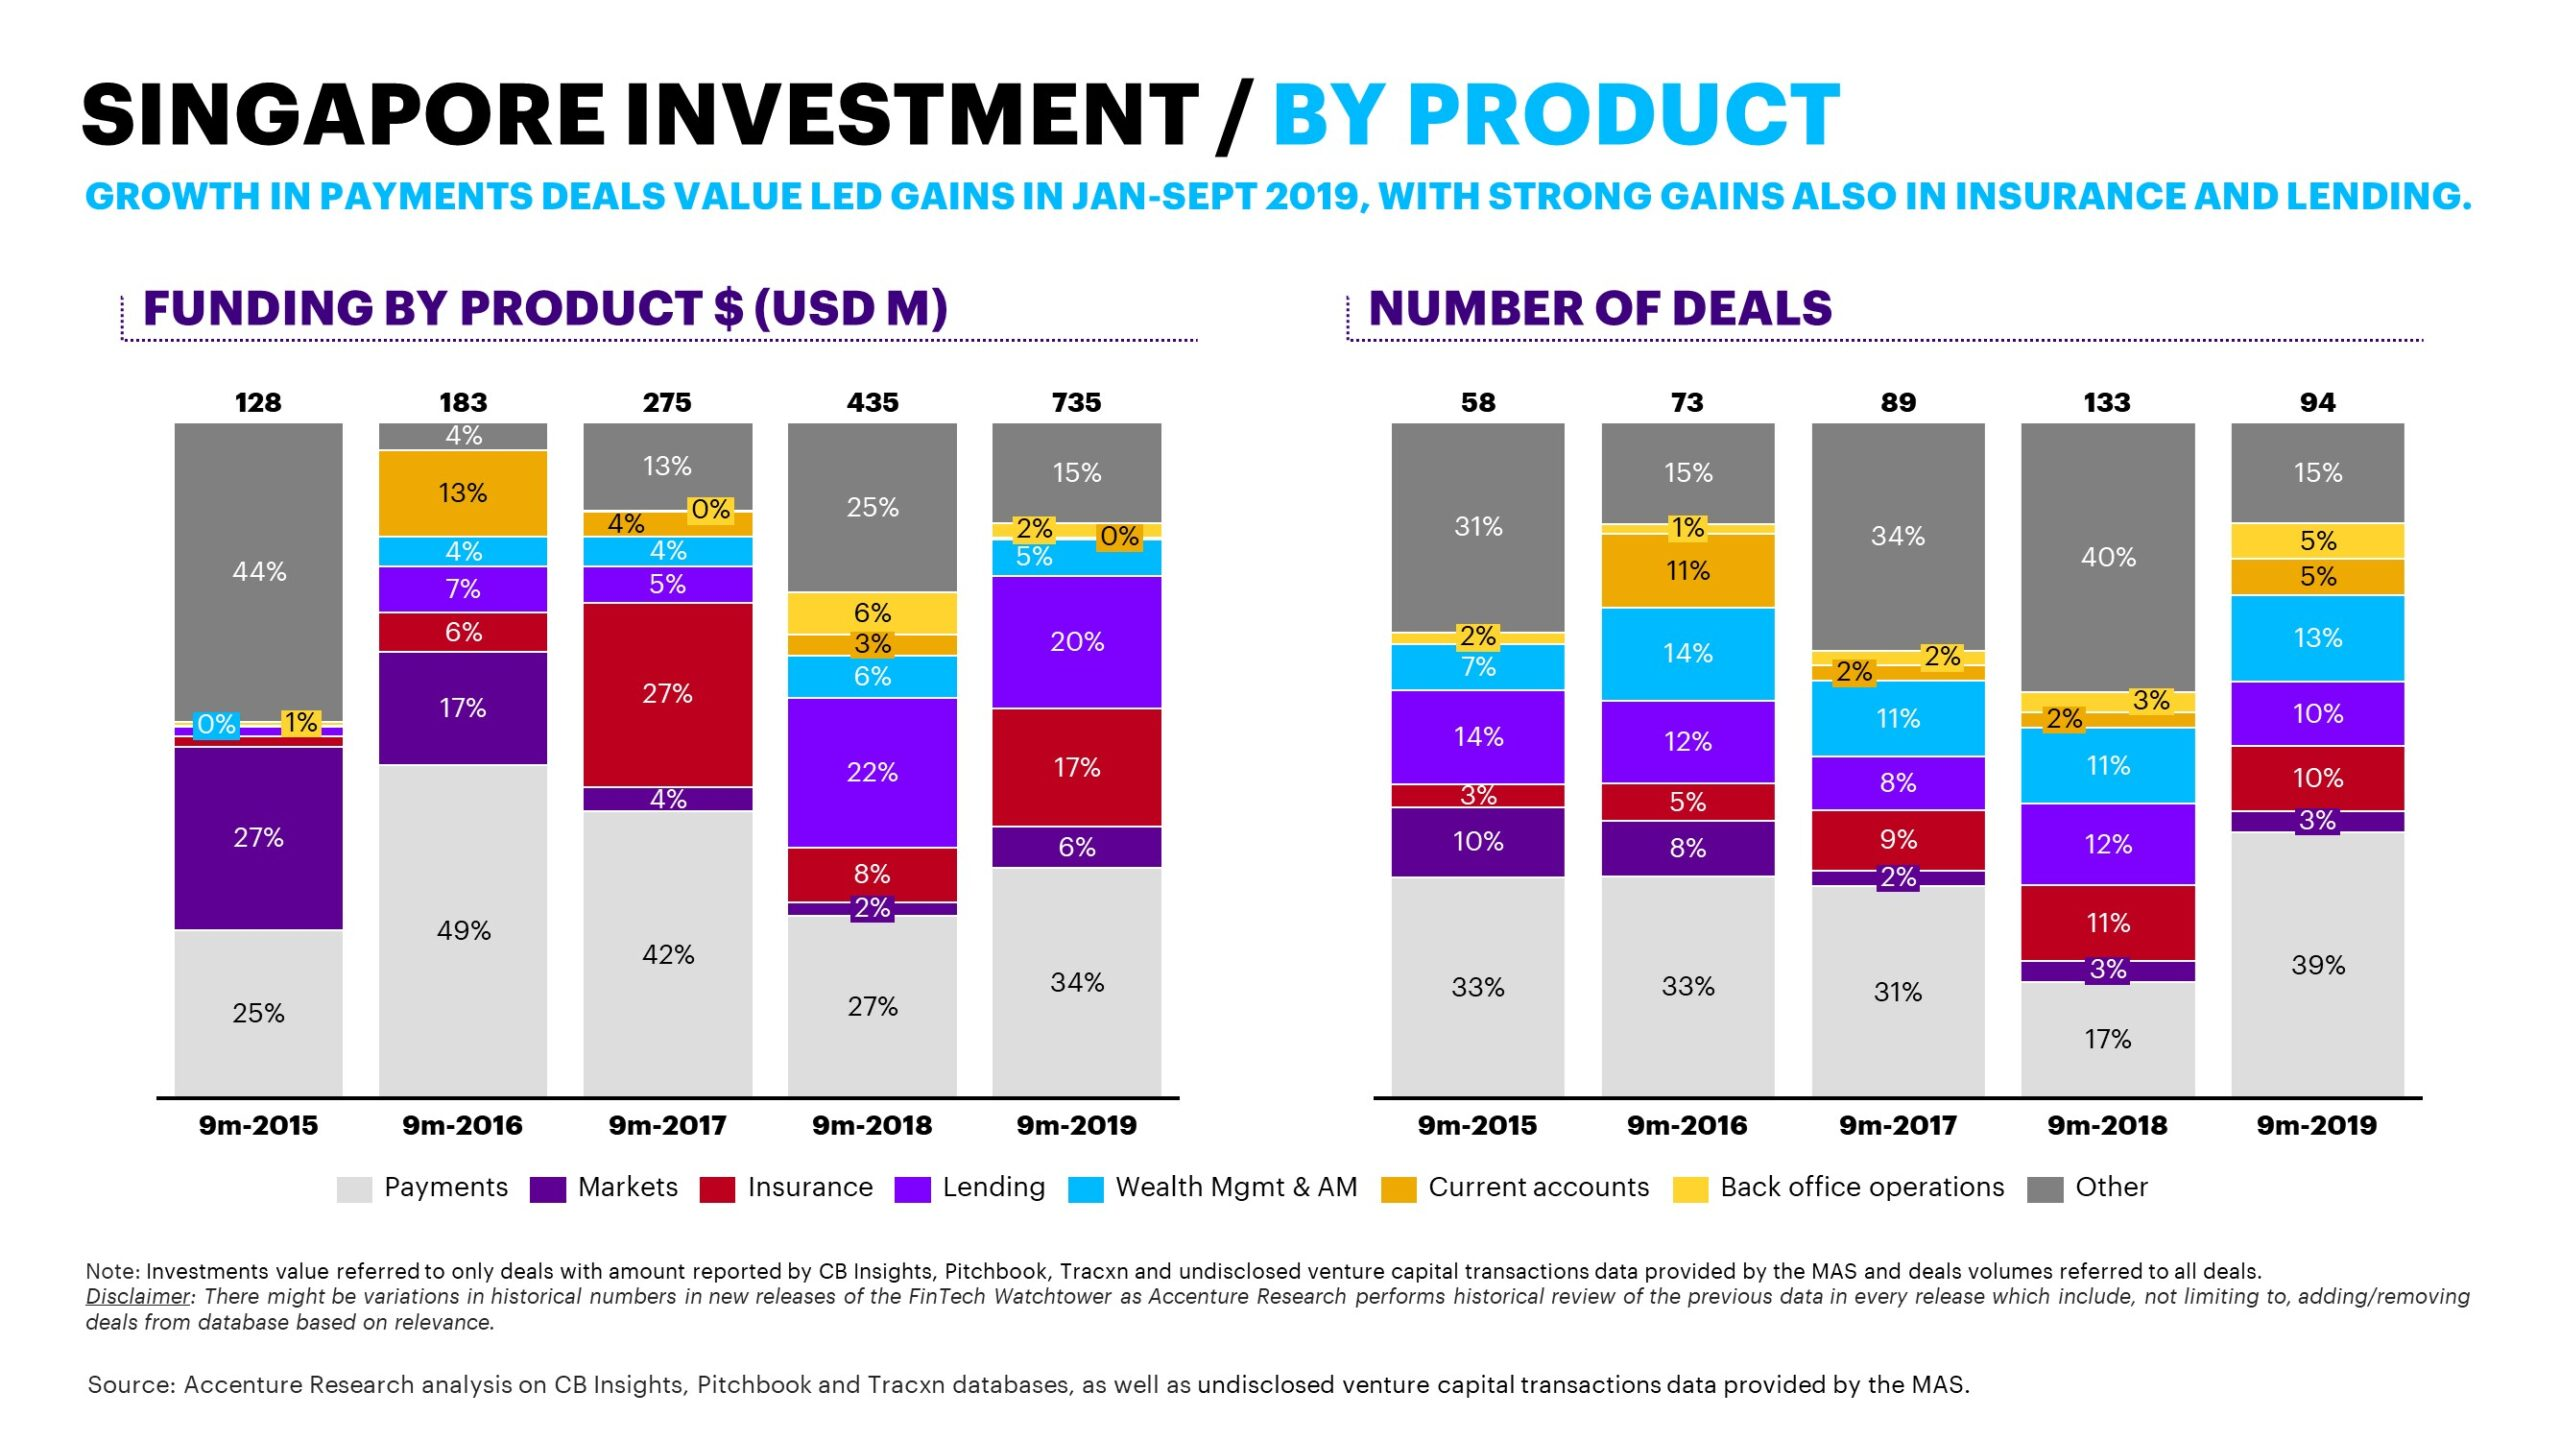 Singapore fintech funding by product, Oct 2019, Source- Accenture Research analysis on CB Insights, Pitchbook and Tracxn databases as well as undisclosed venture capital transactions data provided by MAS